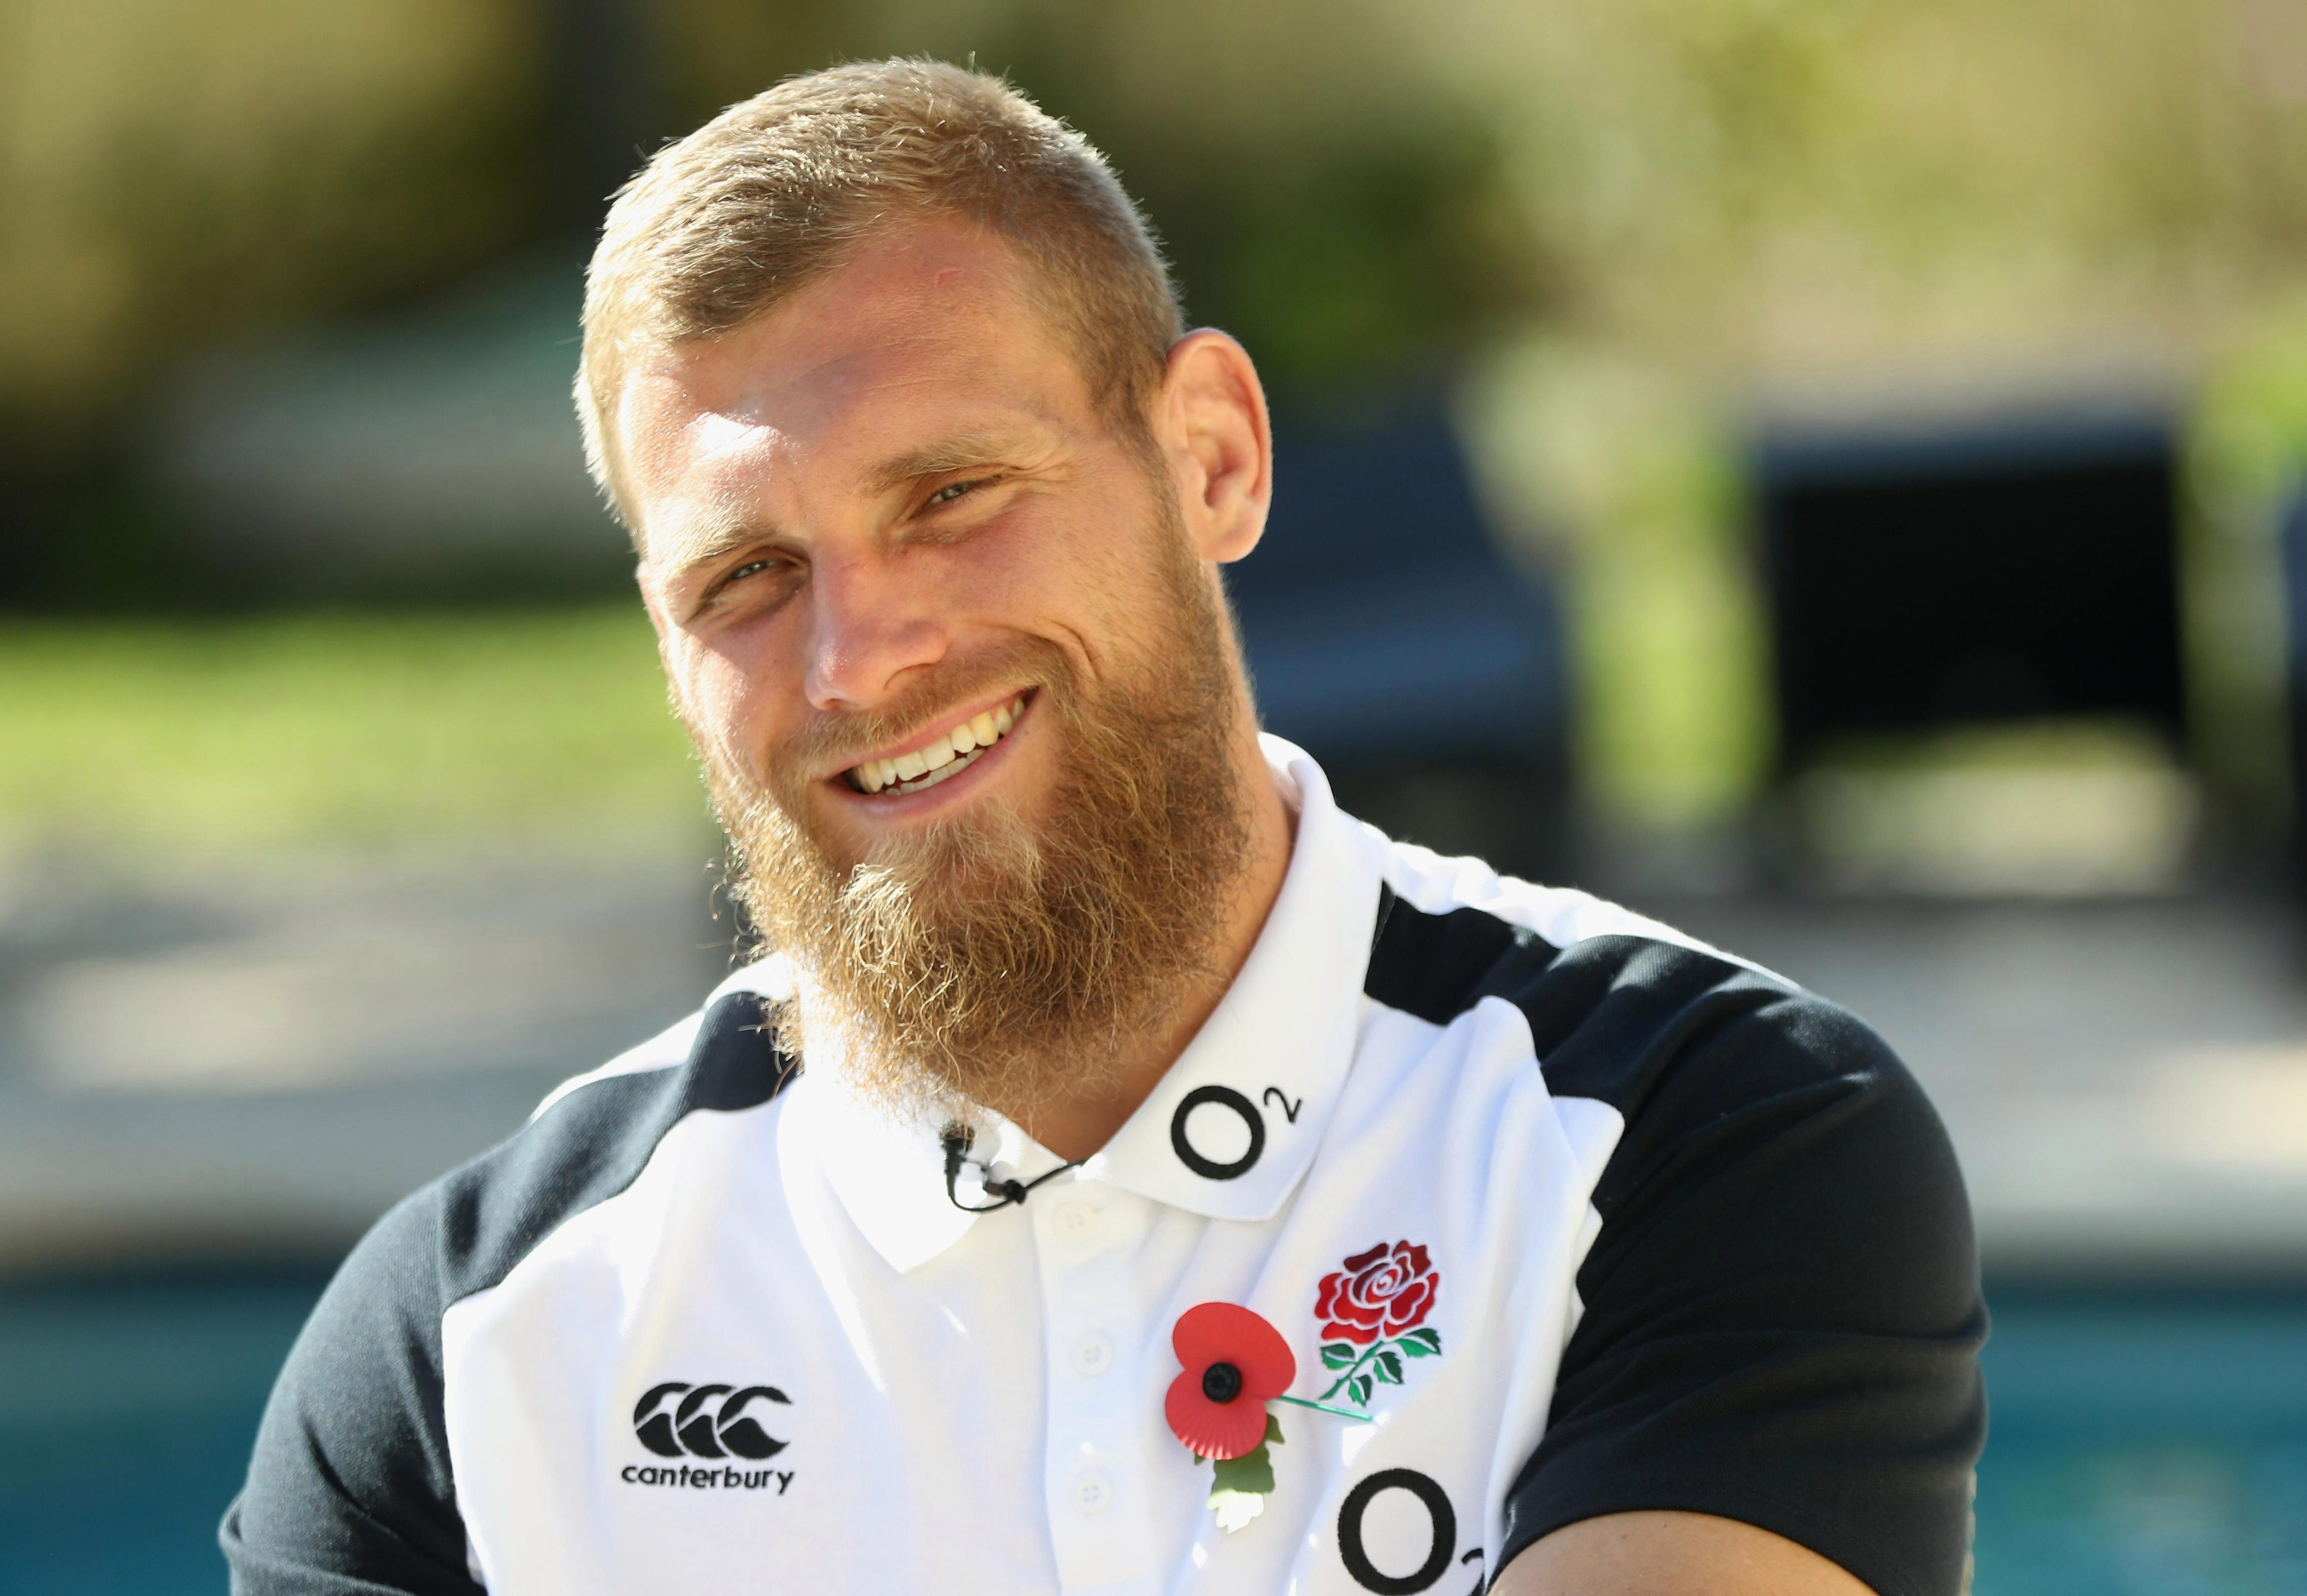 Brad Shields is one of the inexperienced England forwards preparing to take on the might of South Africa